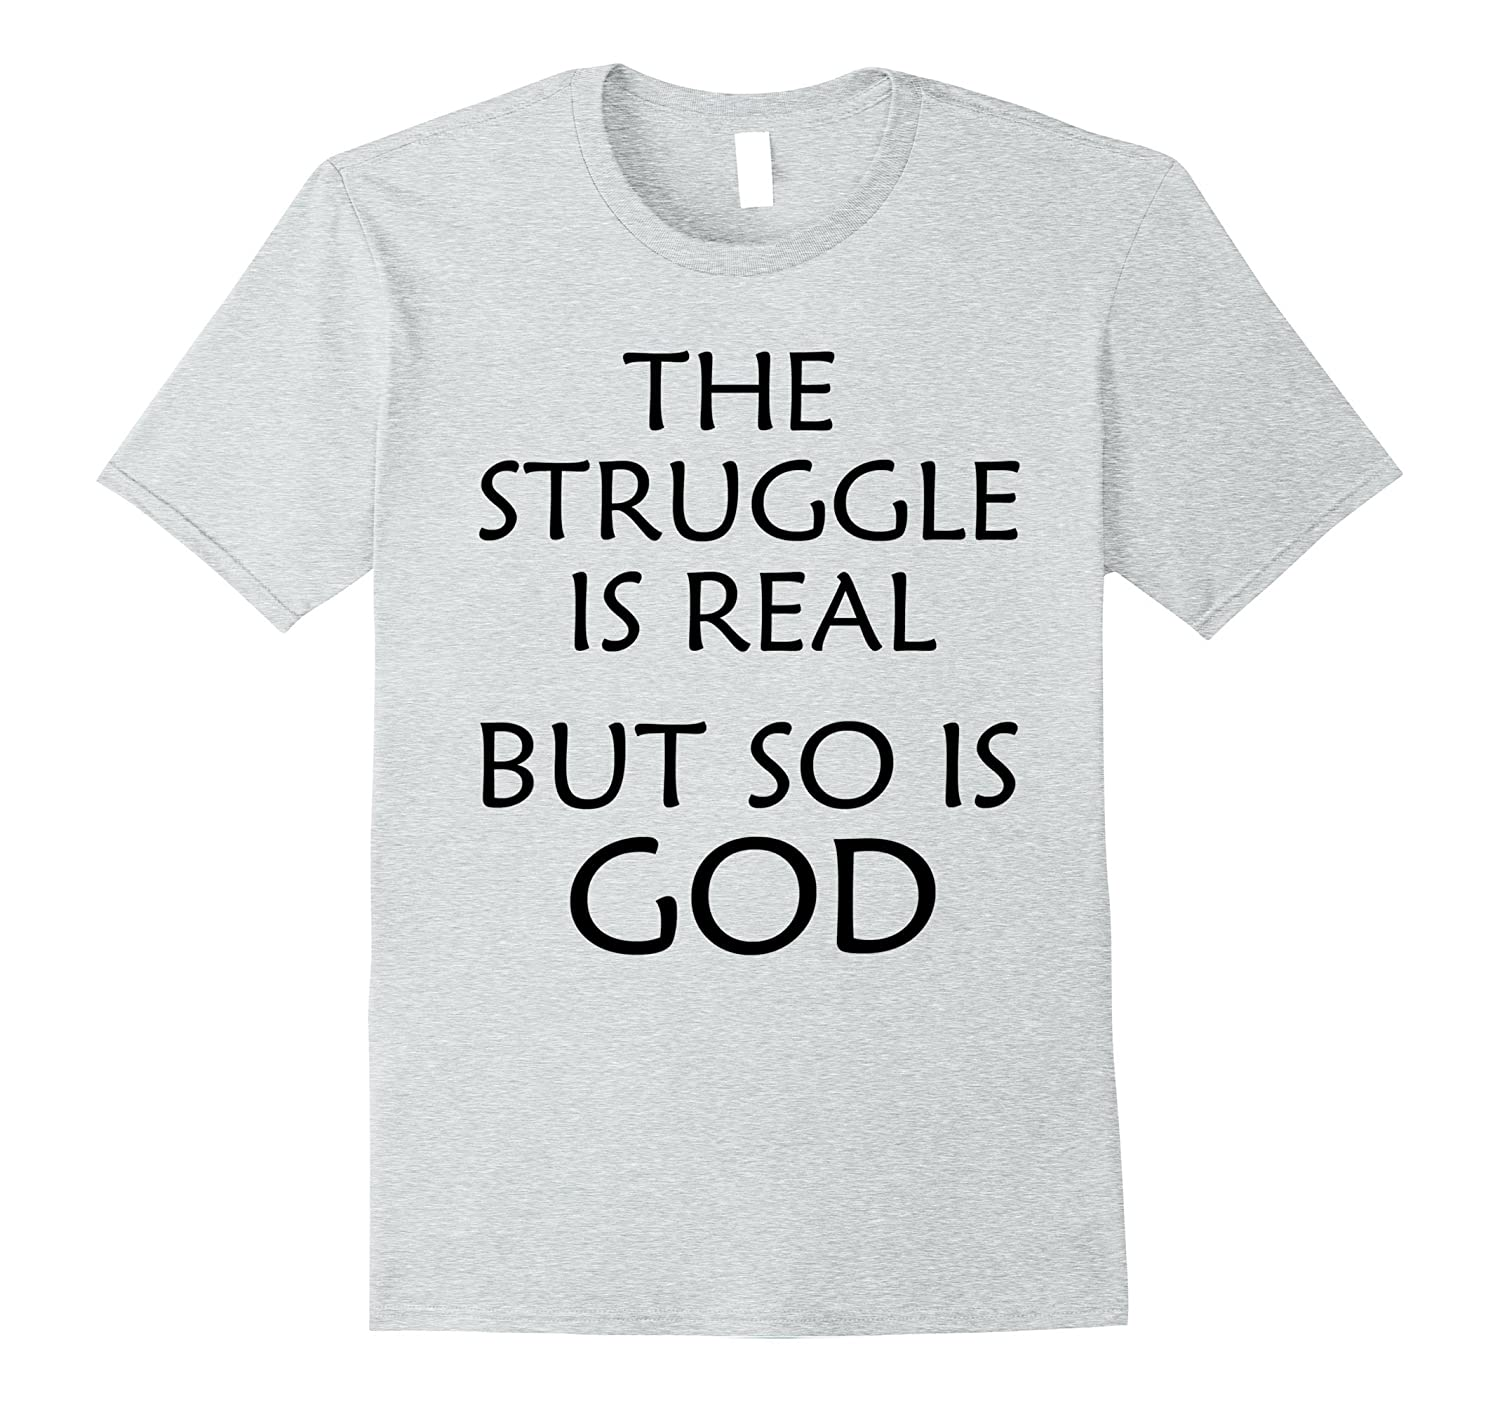 73888c84a Godly Christian T-Shirt The Struggle Is Real But So Is God-PL ...